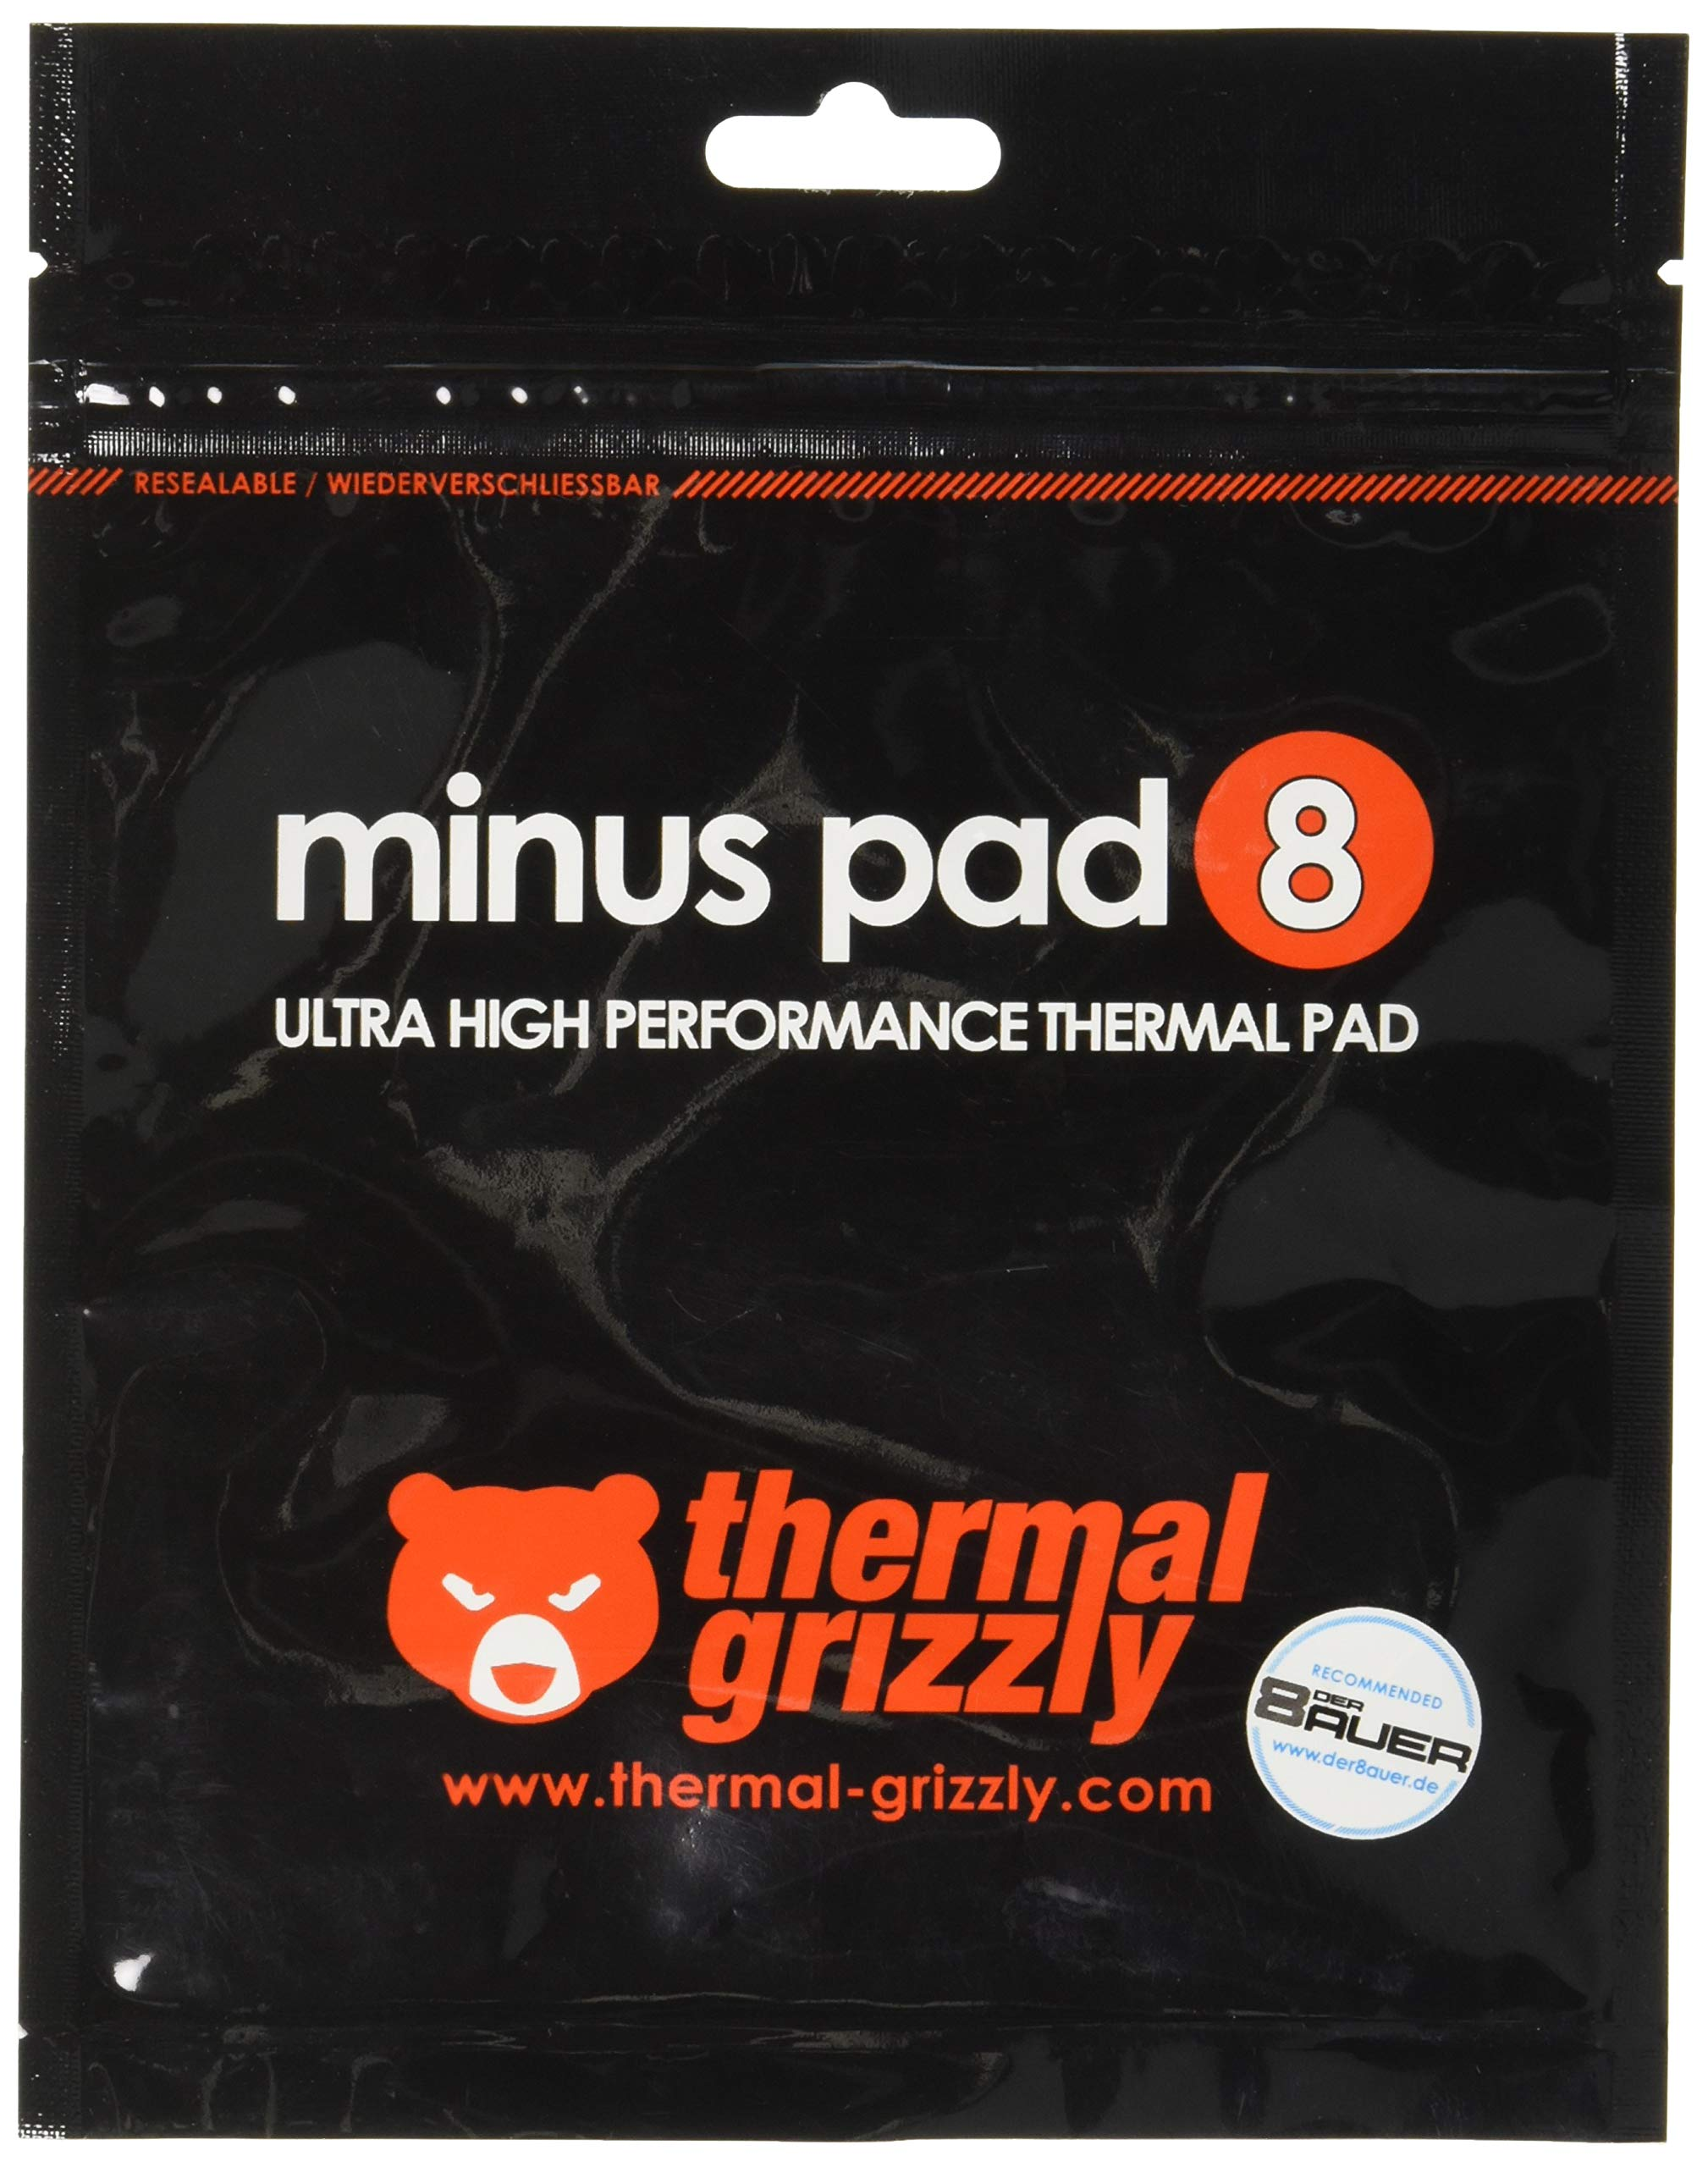 Thermal Grizzly Thermal Pad Minus Pad 8 120 X 20 X 1  (Kit of 2)